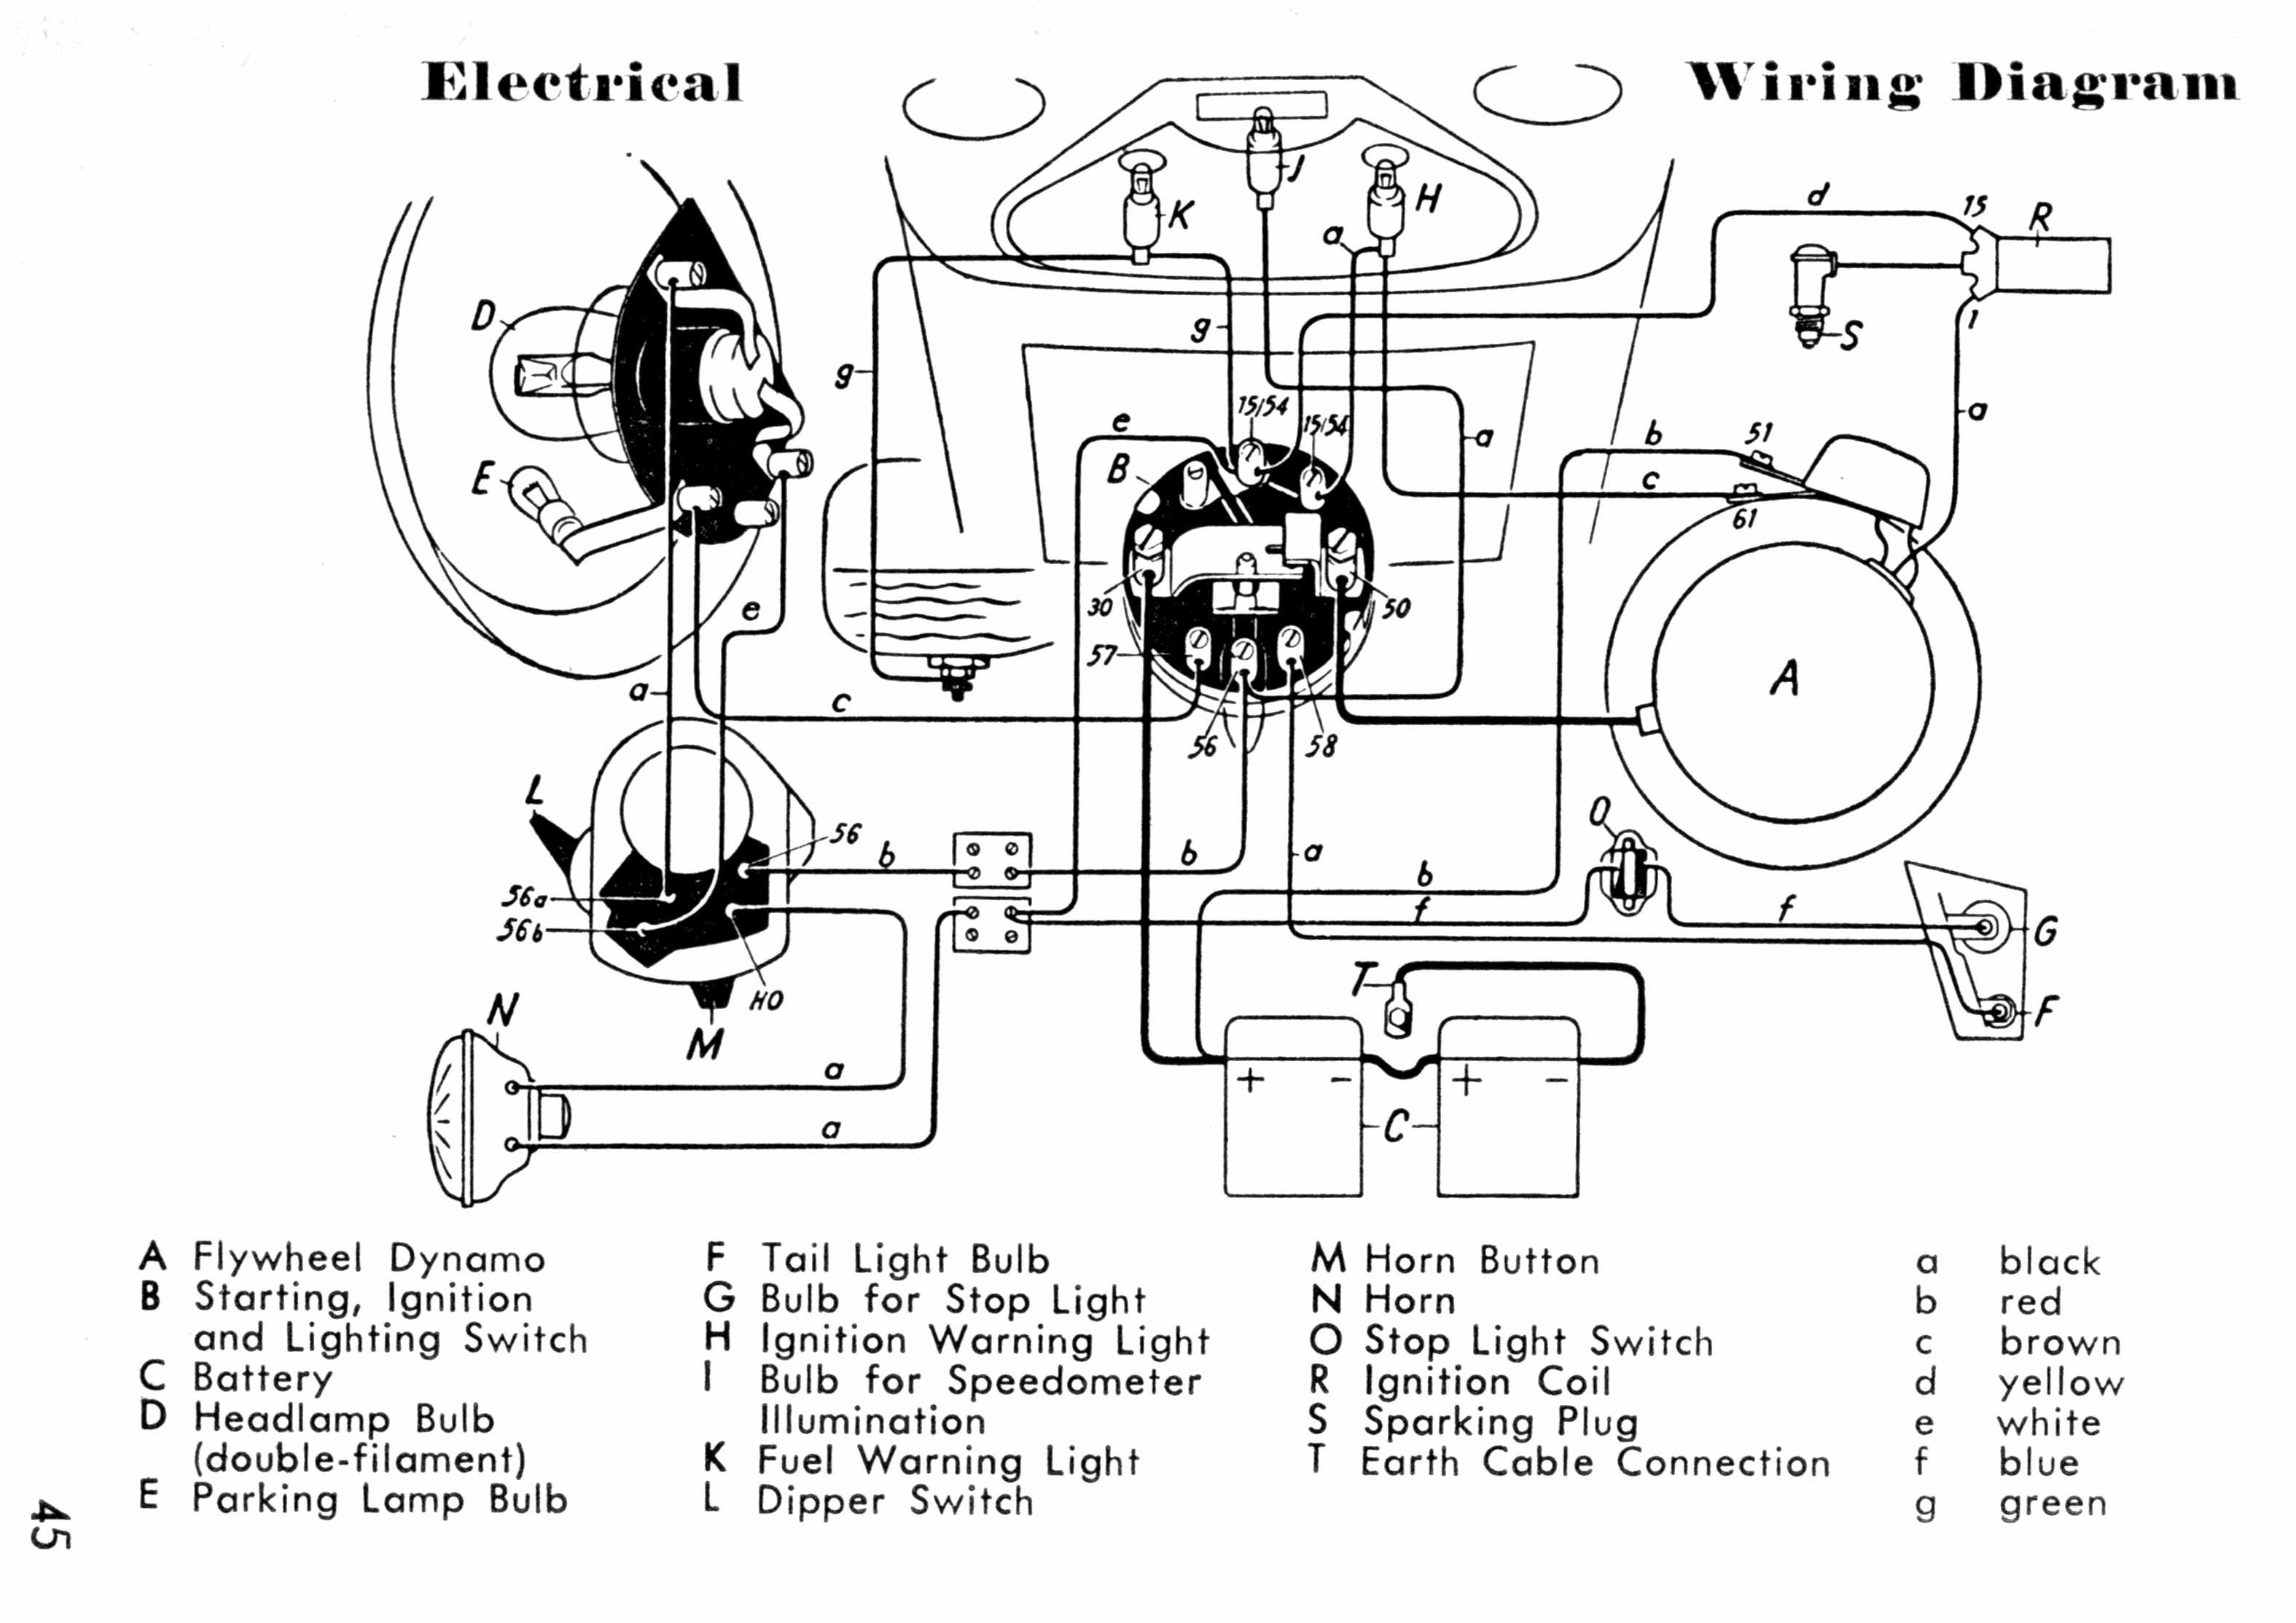 schematic electric scooter wiring diagram closet pinterest rh pinterest com Moped Ignition Wiring Diagram 150Cc Scooter Wiring Diagram